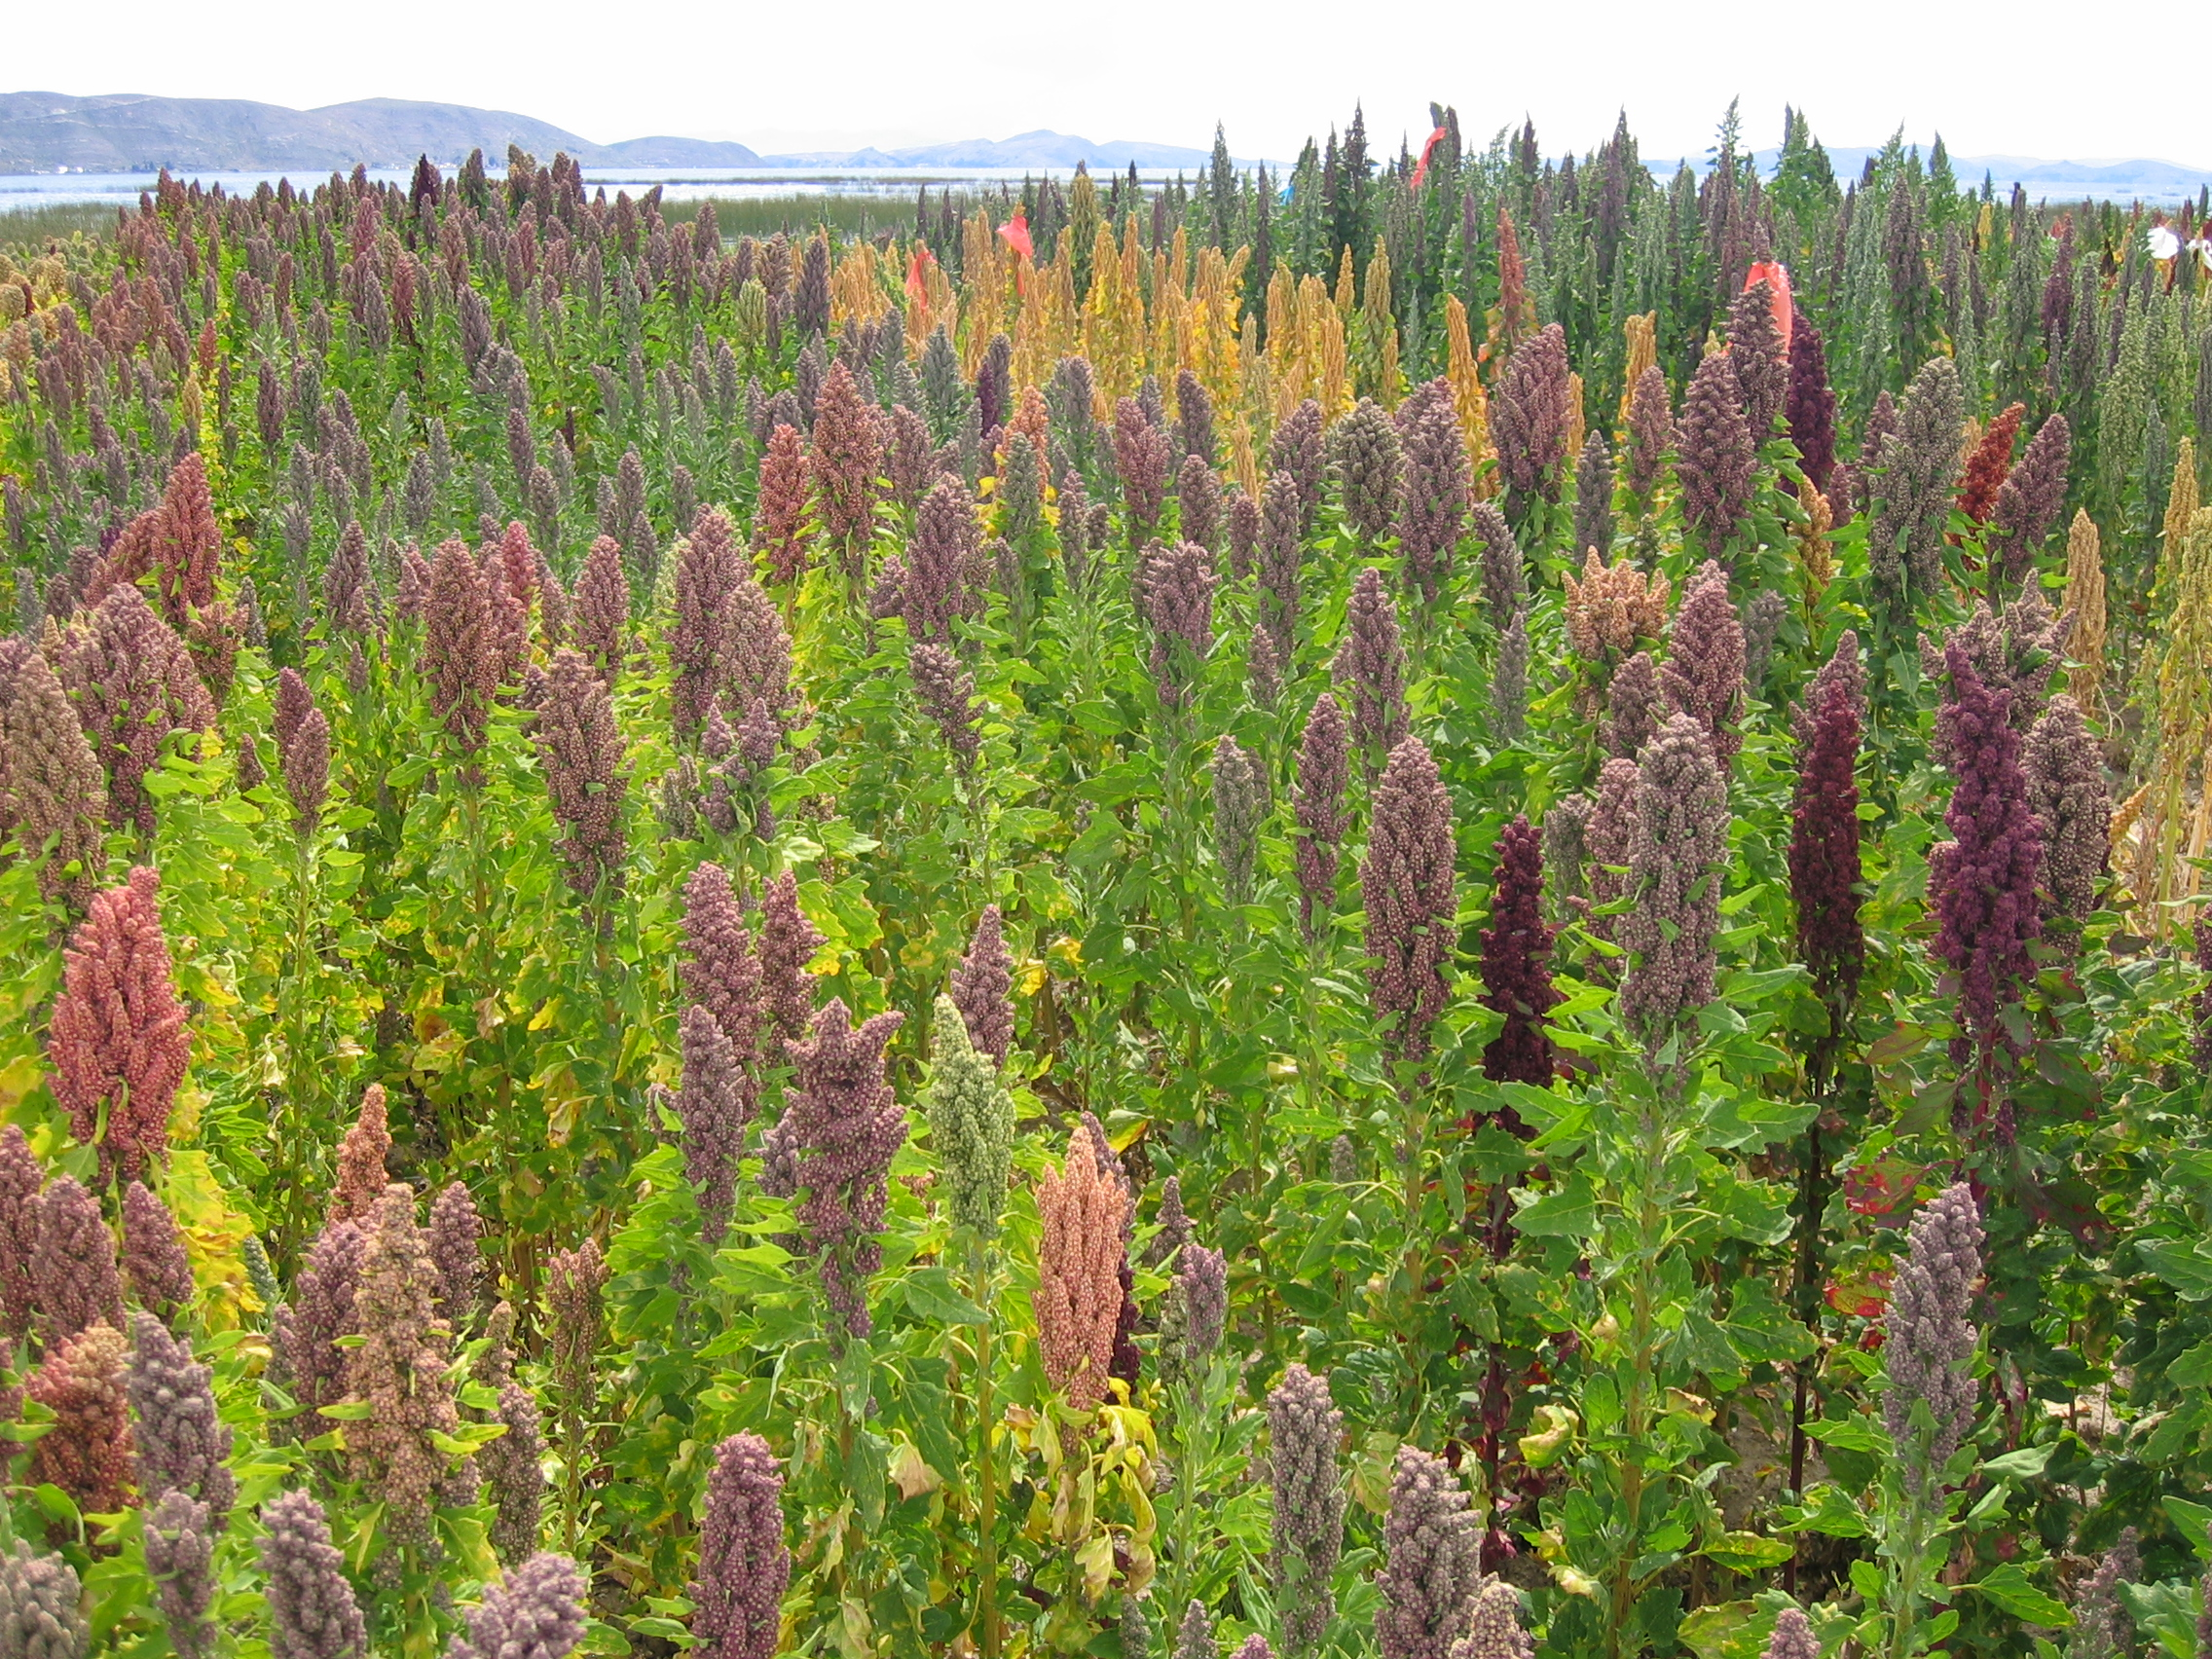 Quinoa, raised by the Incas, is a whole grain that can replace gluten-containing grains.